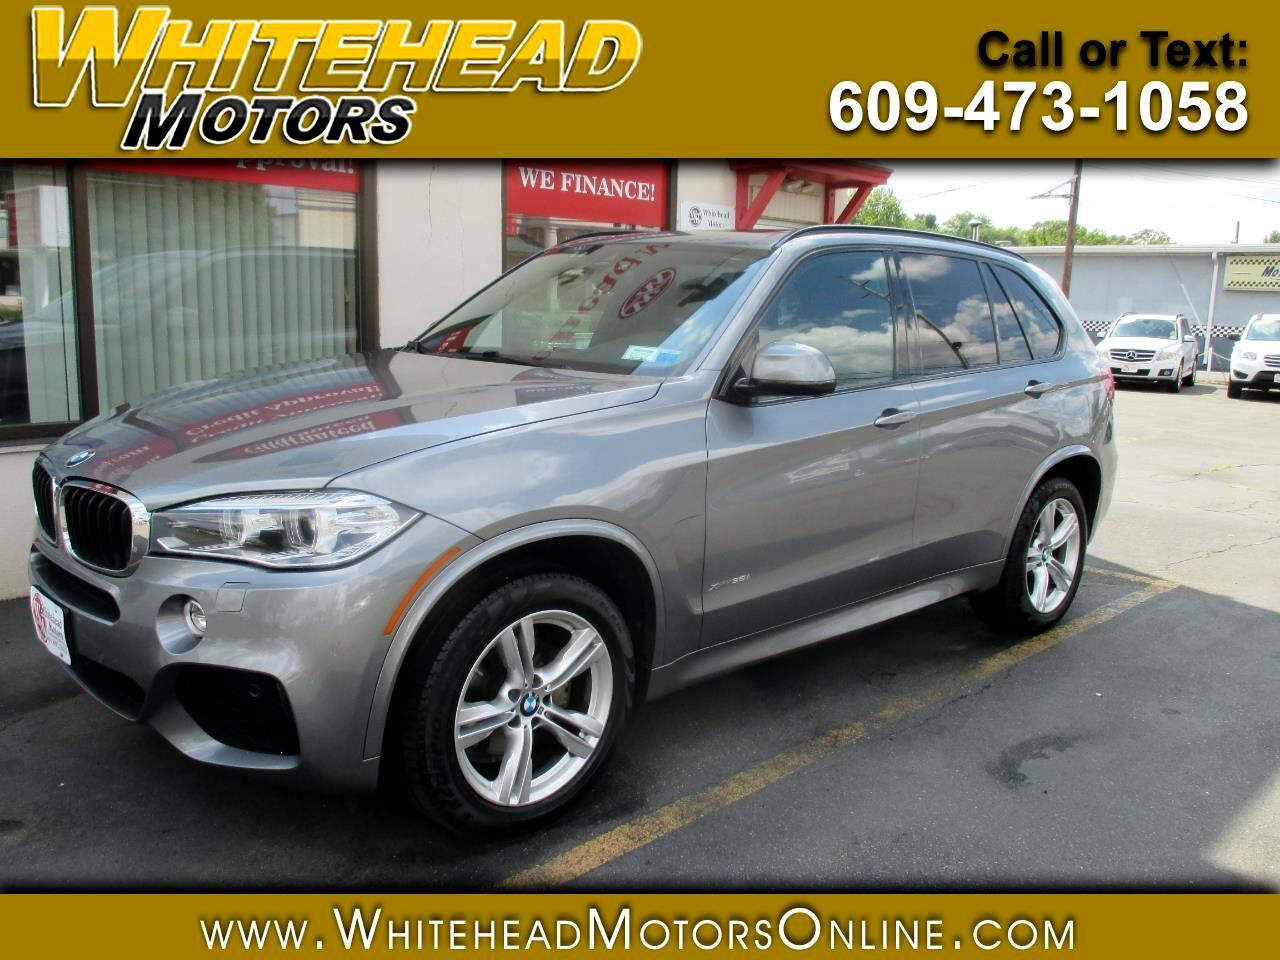 BMW X5 sDrive35i Sports Activity Vehicle 2016